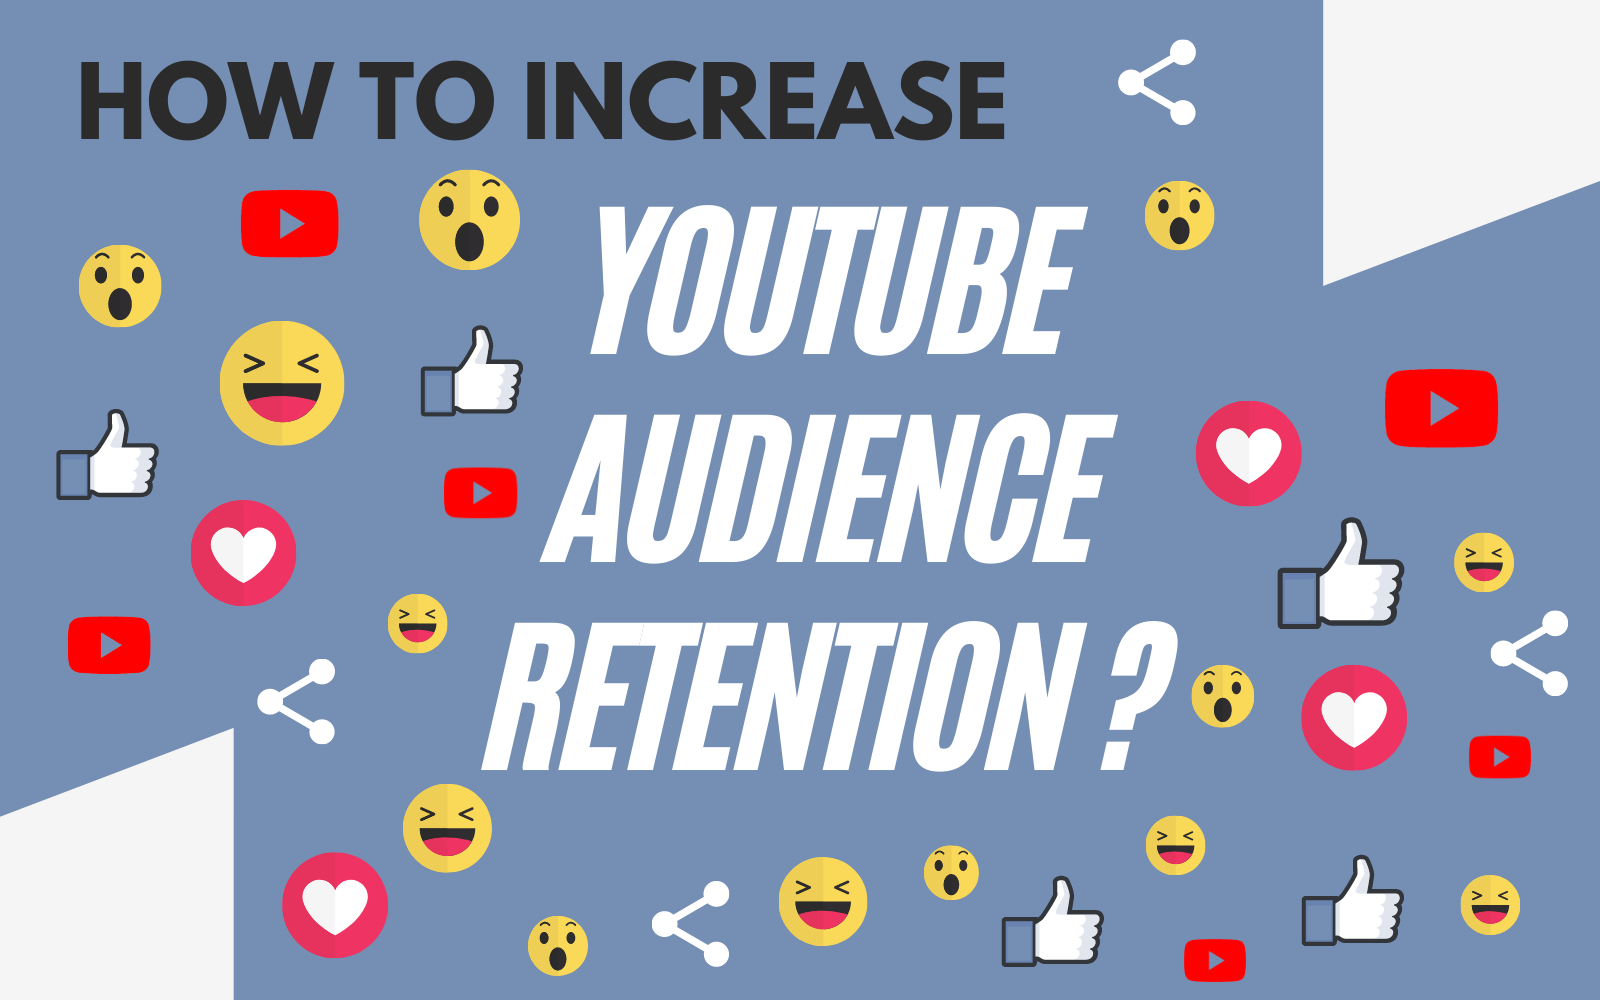 How To Increase Youtube Audience Retention?